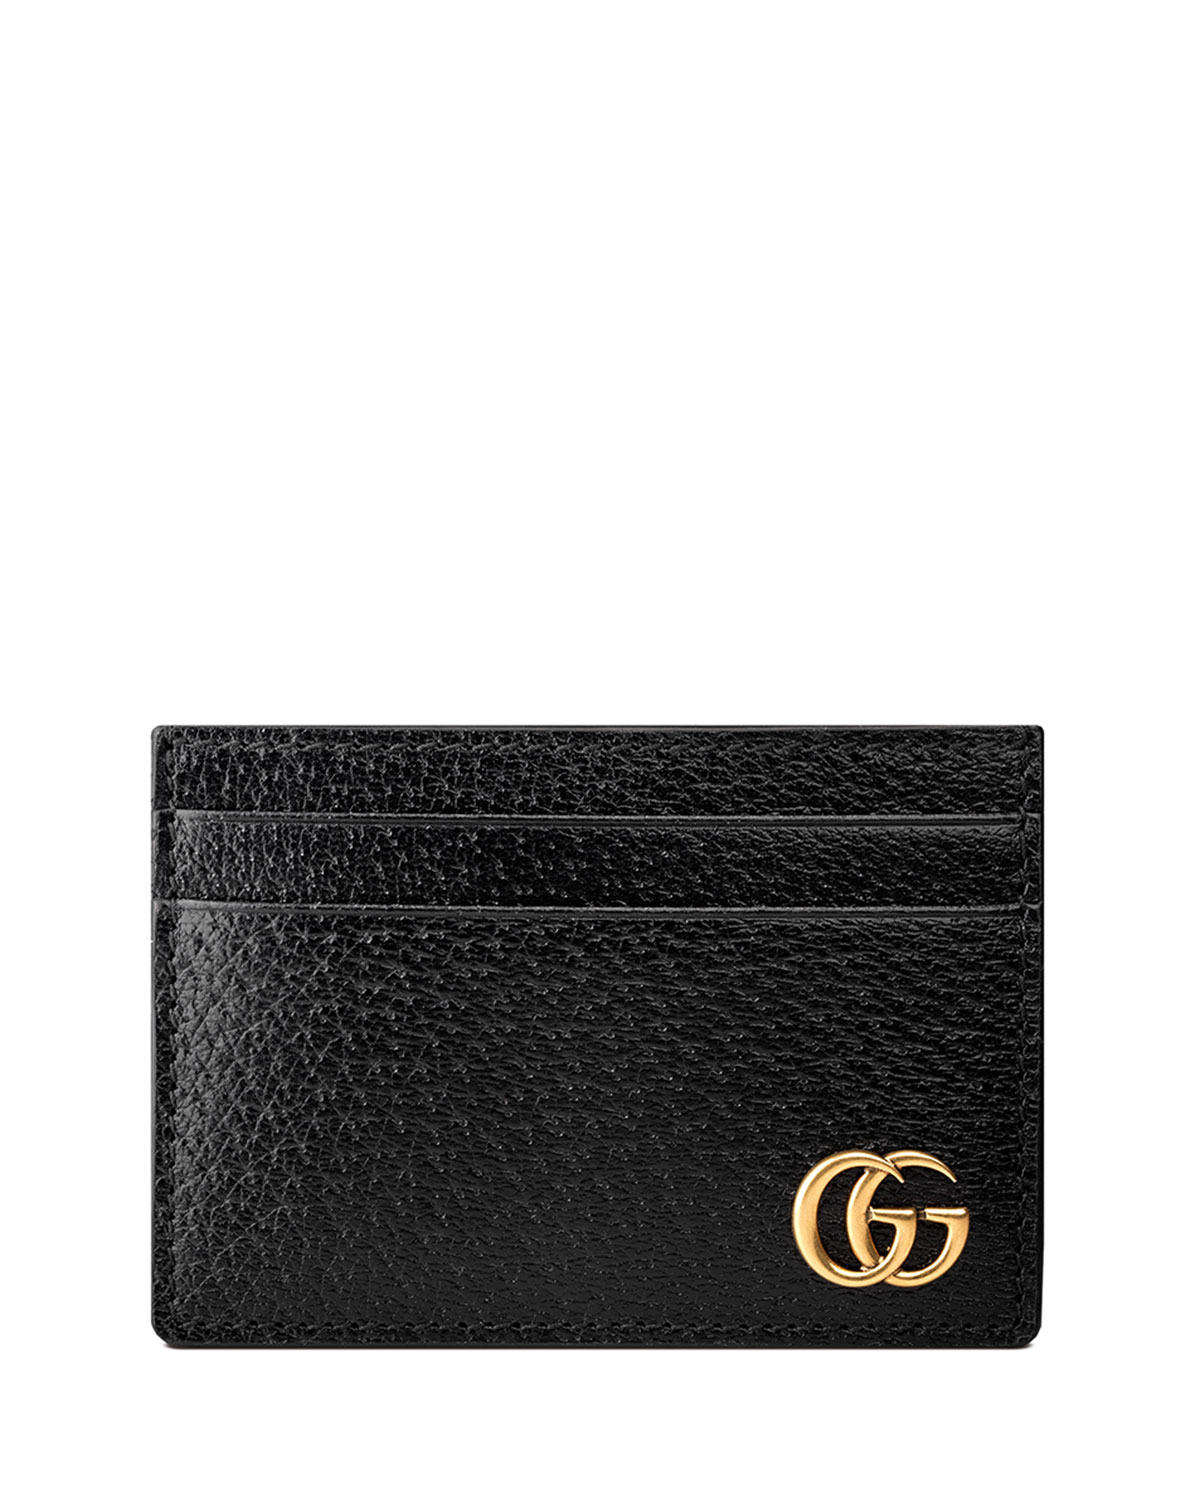 dc13a99de06 Gucci Men s Leather Credit Card Case with Money Clip